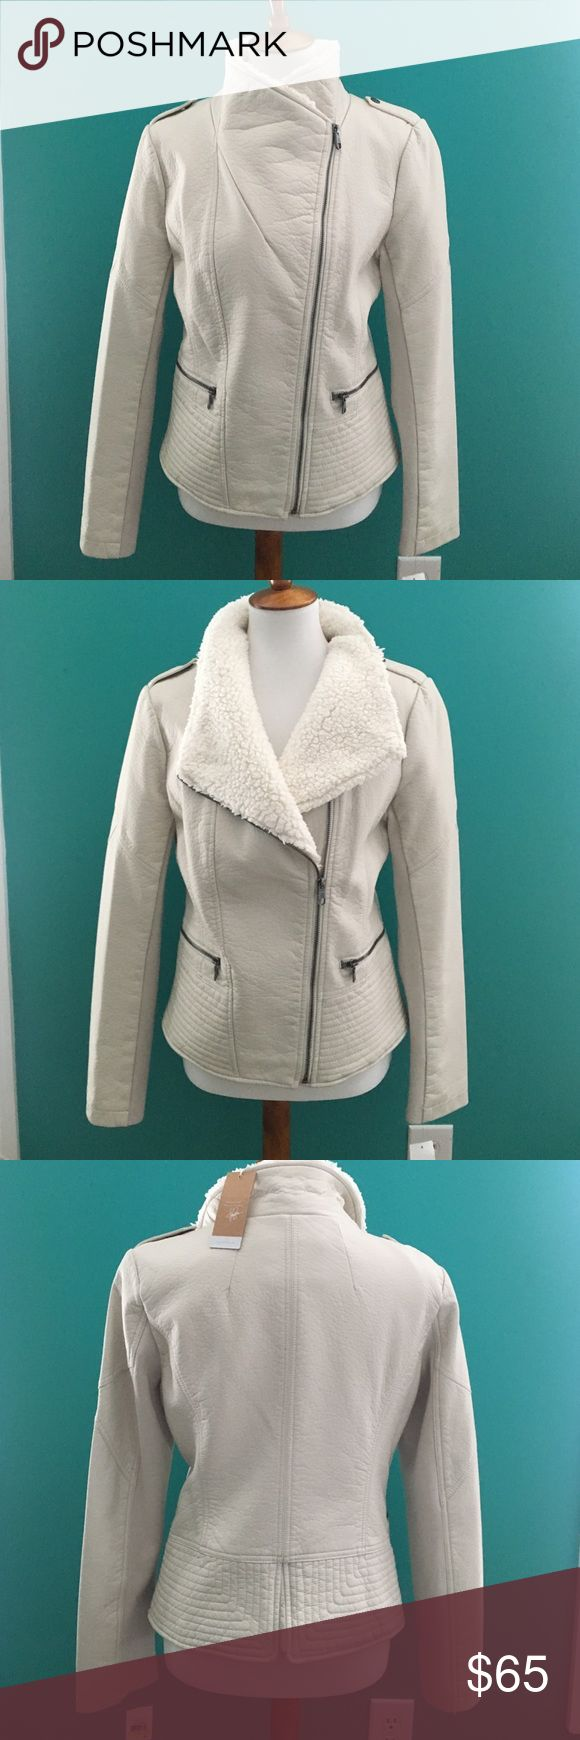 Jessica Simpson NWT beige jacket NWT - Tenth Anniversary Collection Jessica Simpson beige jacket with front zipper. Fur collar & lined. Great fun jacket ! Jessica Simpson Jackets & Coats Jean Jackets